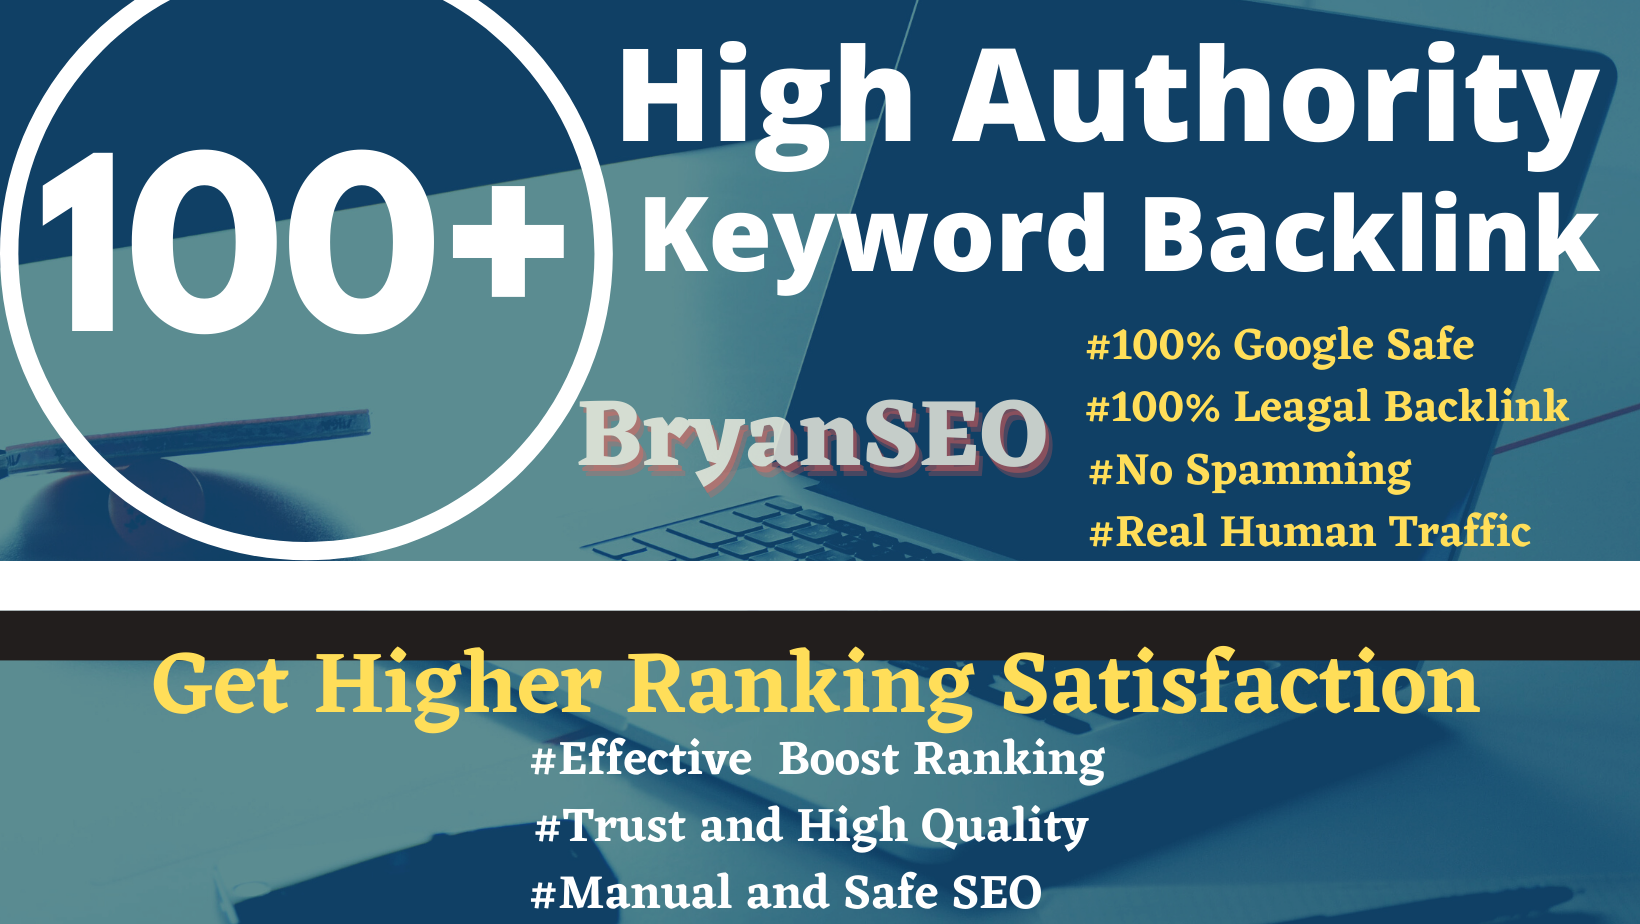 Get 100+ KEYWORD BACKLINK From Unique Domain For Get Higher Ranking Position On Google Top Page